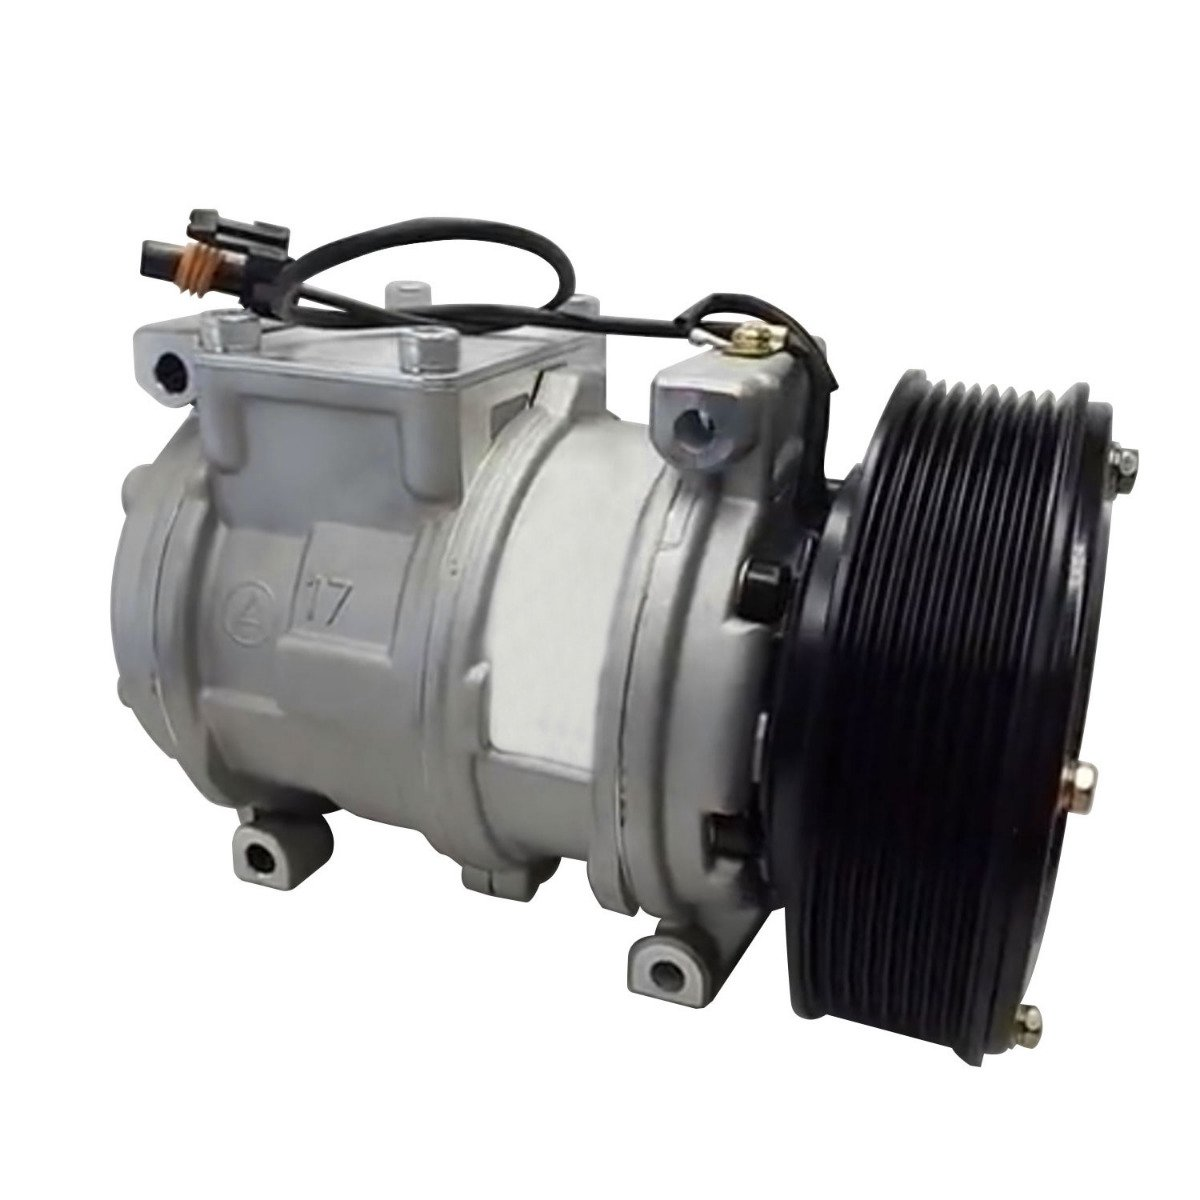 Air Conditioning Compressor AH169875 Compatible With John Deere Tractor 5085M 5095M 5105M 5410 5420N 5510 5520 5520N 6403 6603 7210 7400 7410